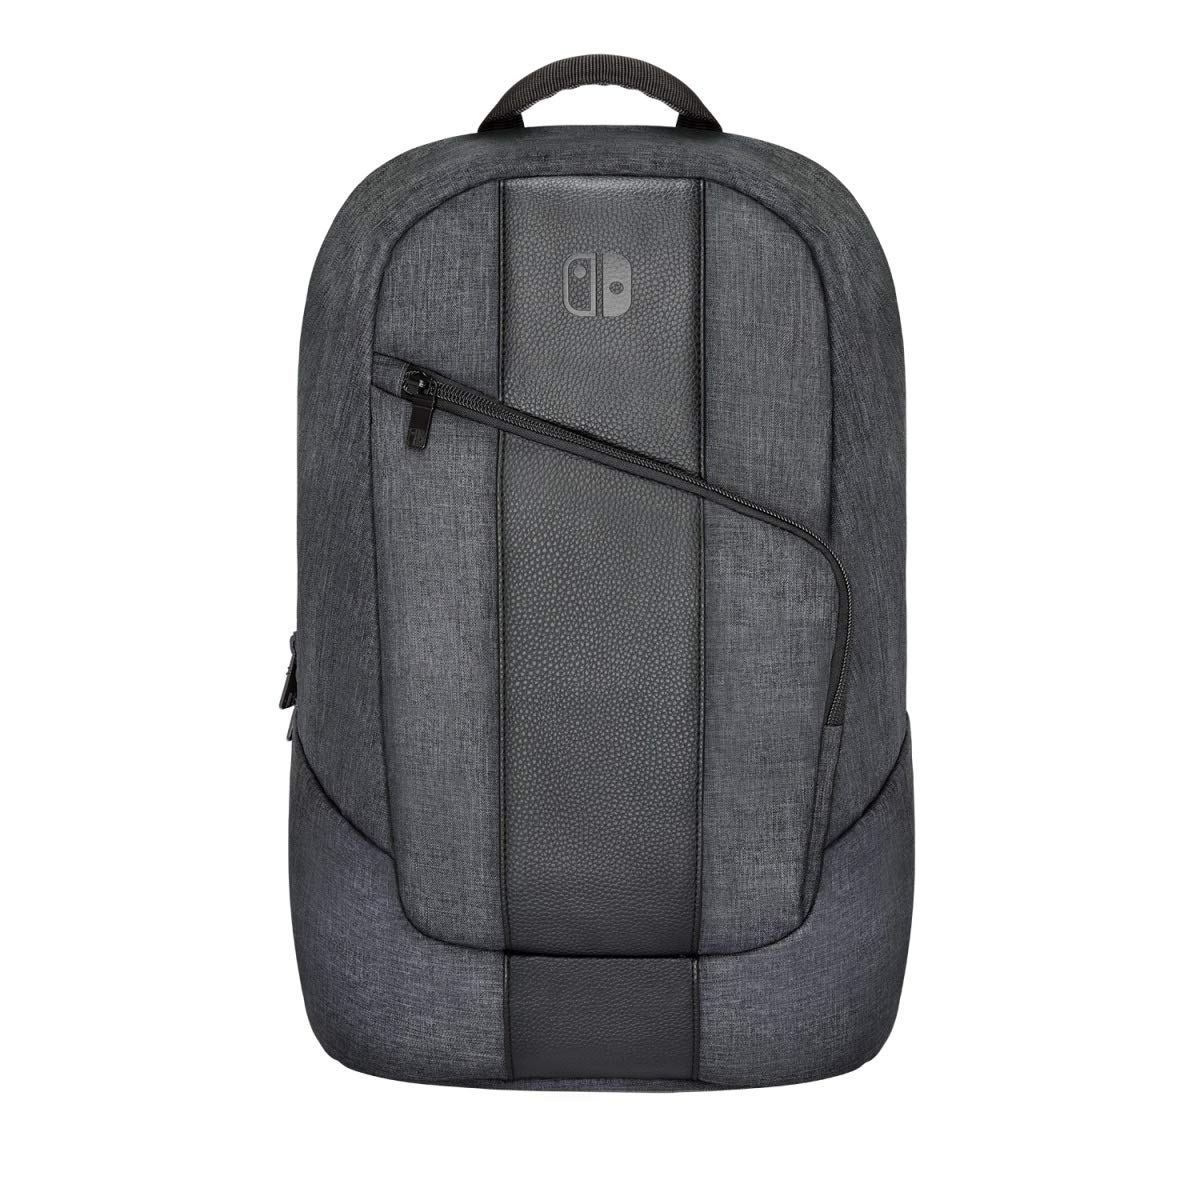 PDP 500-118 Nintendo Switch System Backpack Elite Edition, 500-118 - Nintendo Switch